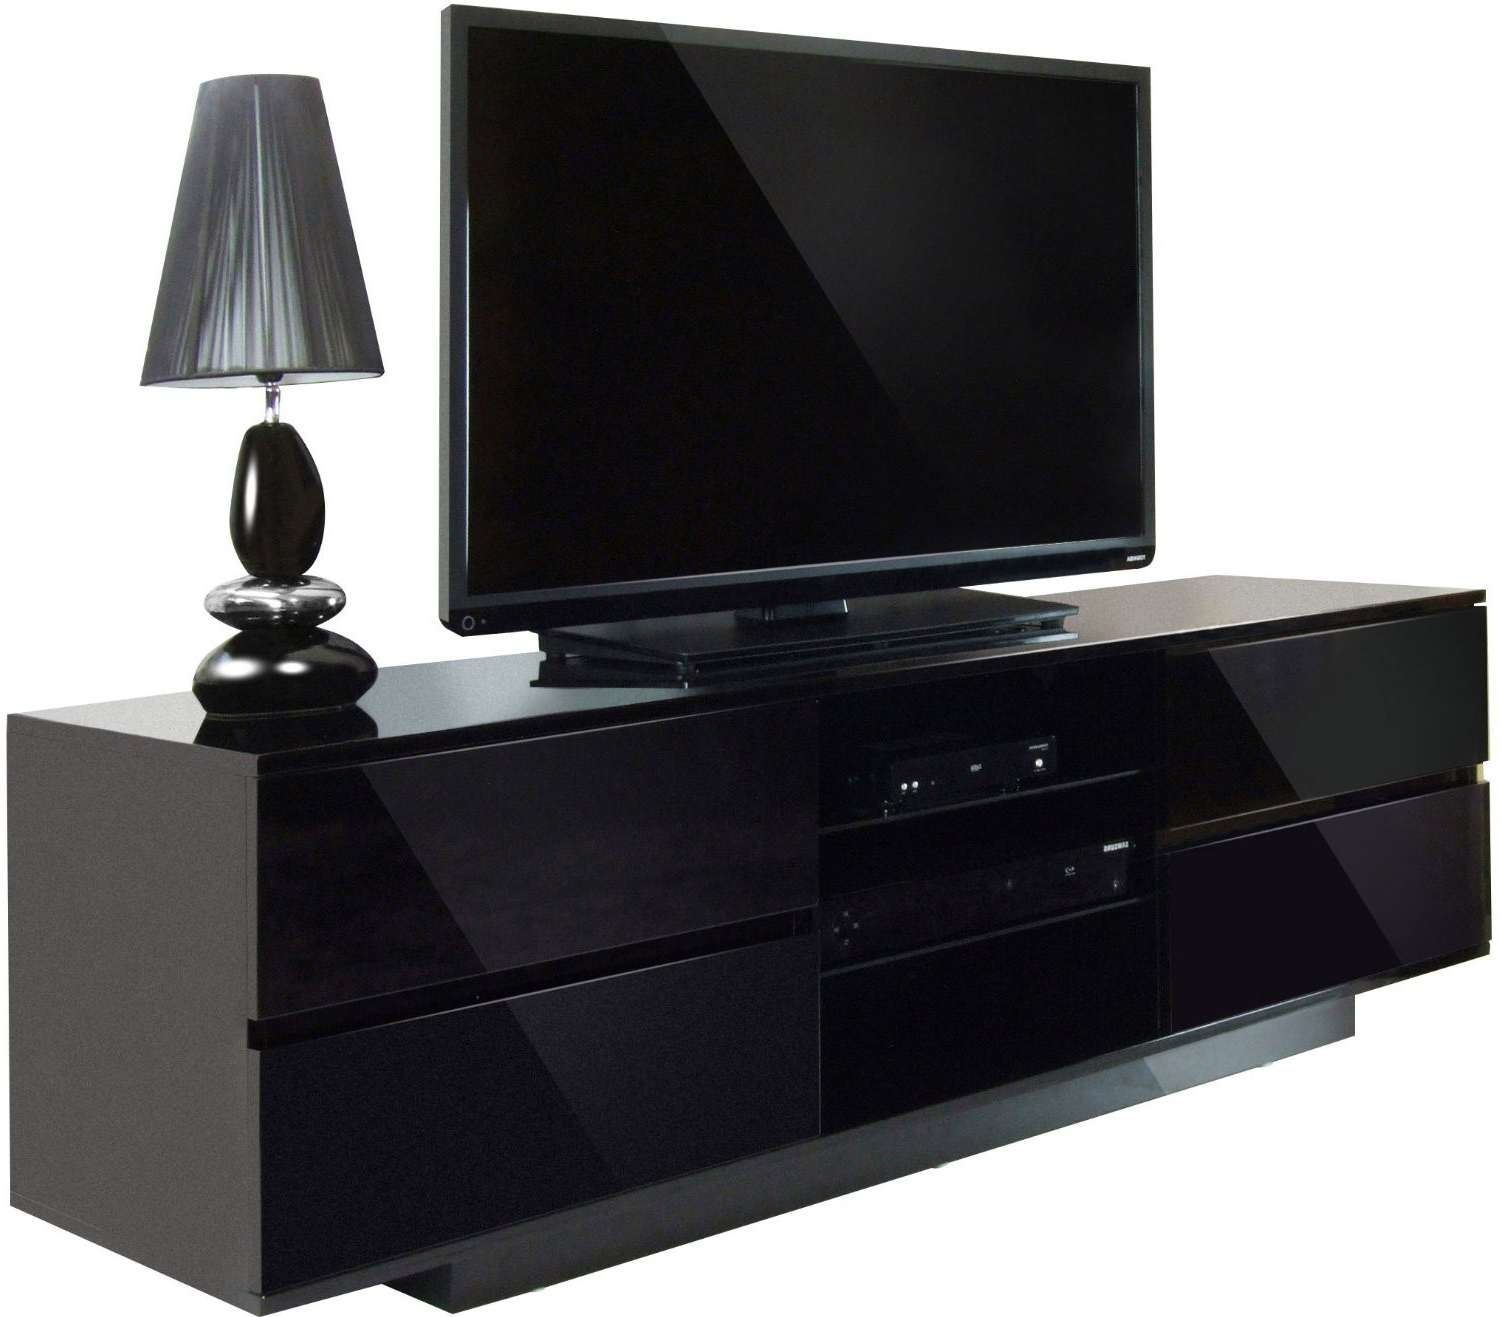 Gloss Black Tv Cabinet Avitus – Big Av With Regard To Black Tv Cabinets With Drawers (View 7 of 20)